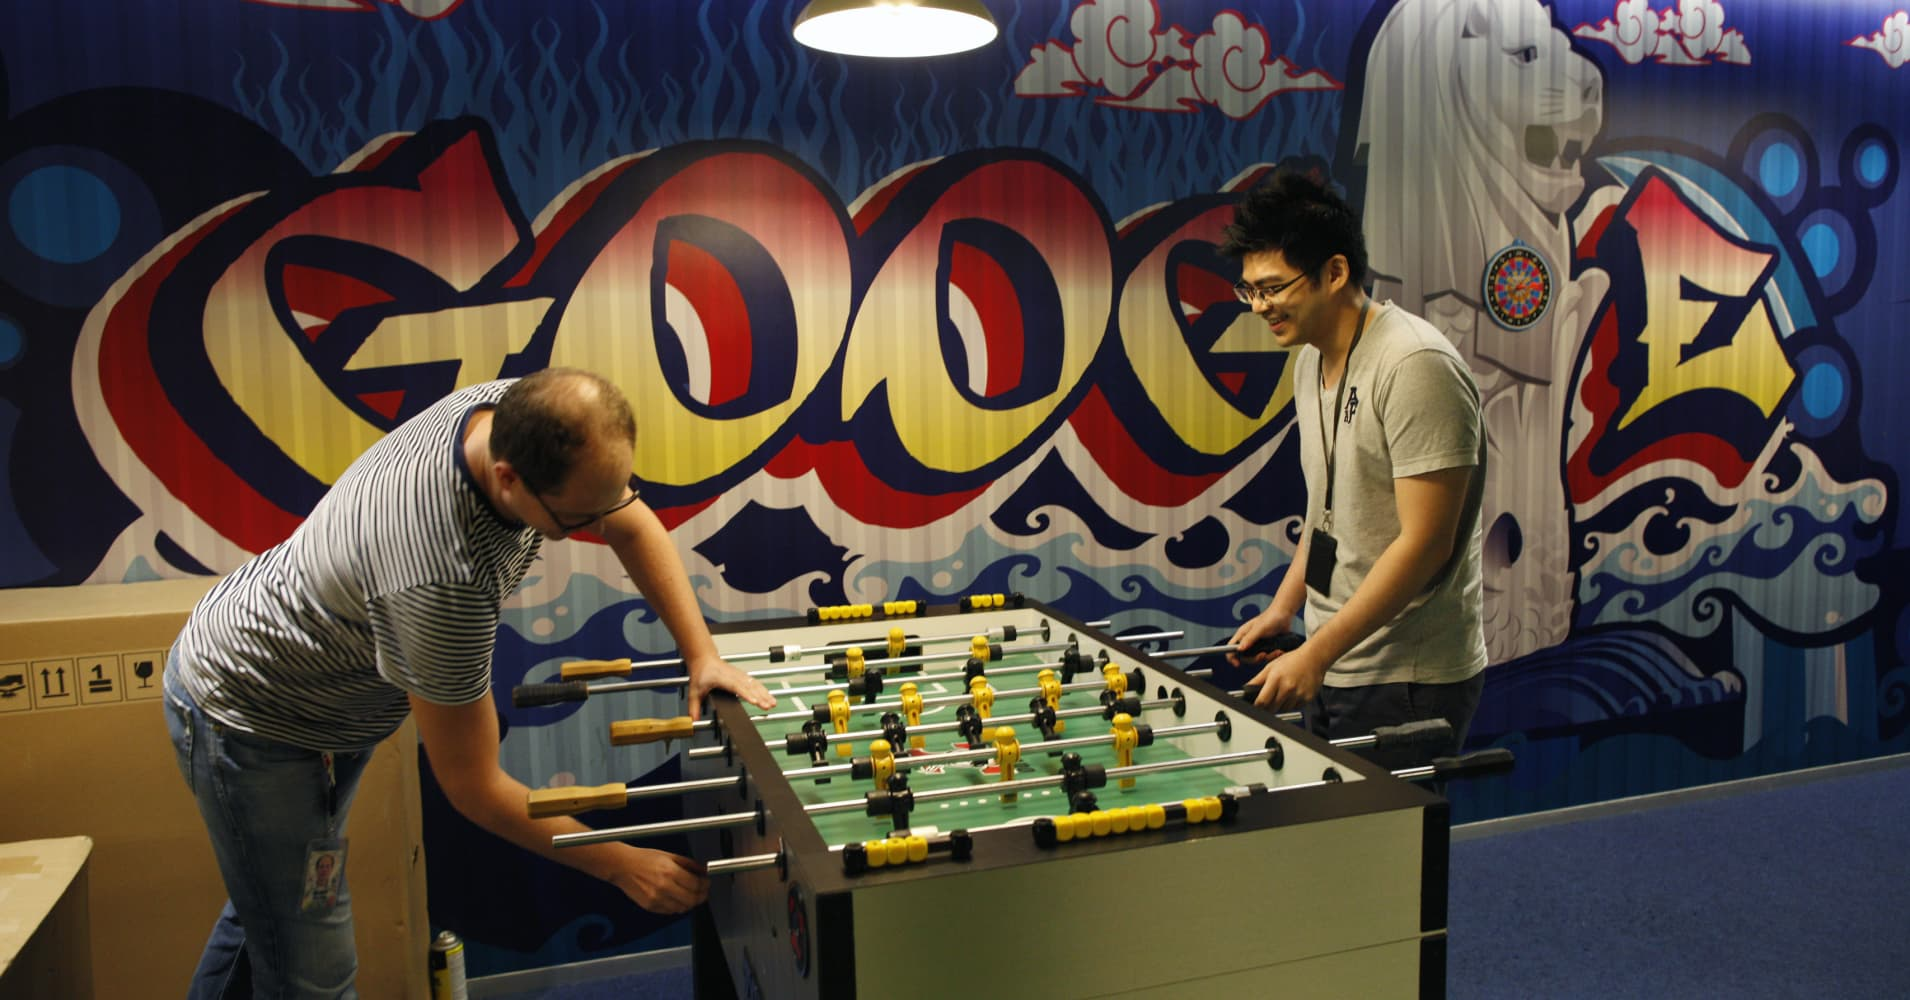 5 companies with employee perks that rival Google's